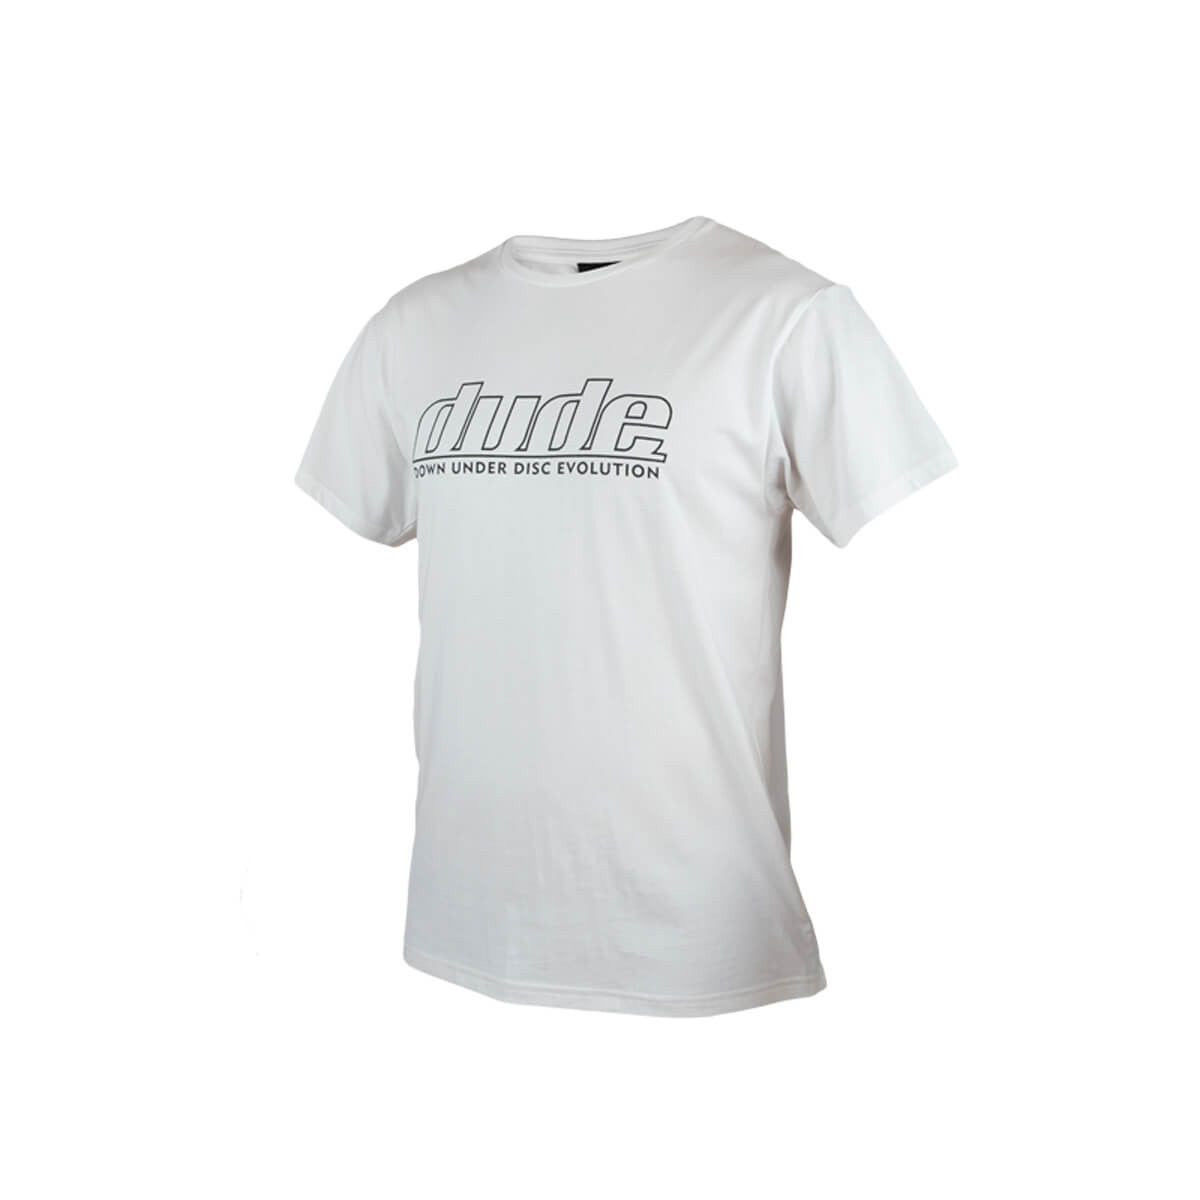 An image of Blank Corporate Tees in white color with one colour logo print and fold over labels